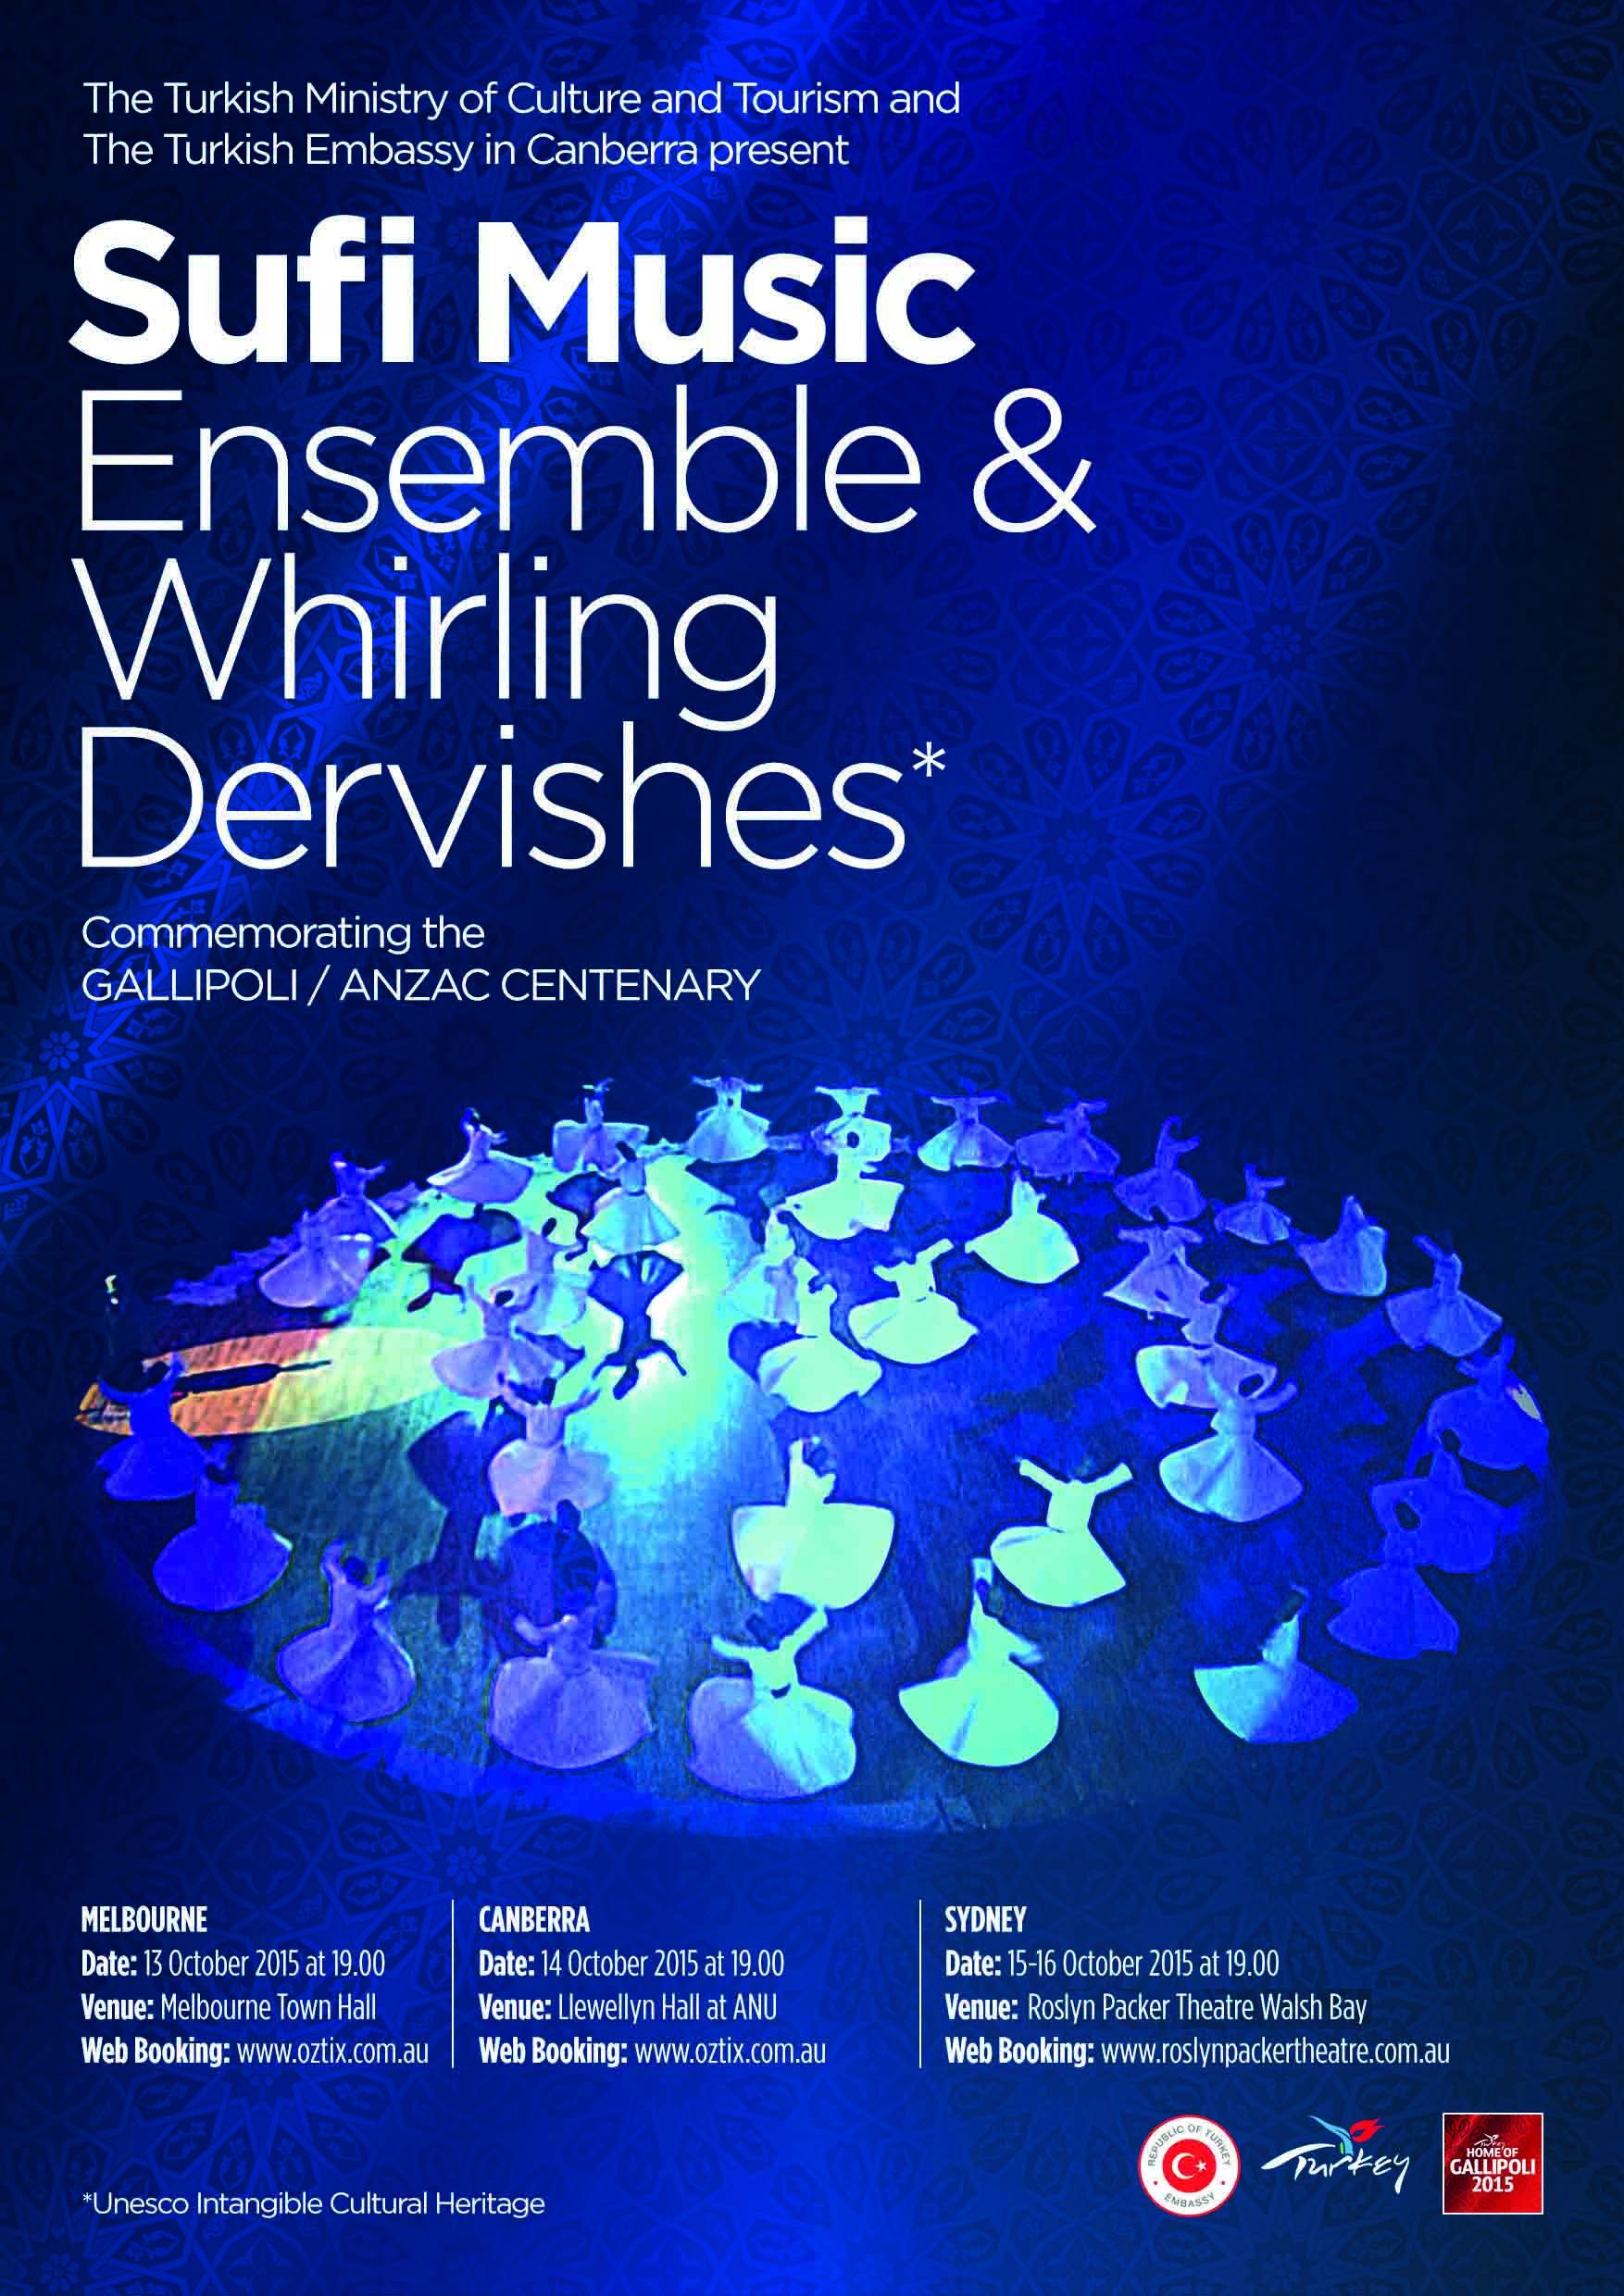 Turkish Sufi Music & Sema Ceremony featuring Whirling Dervishes 13